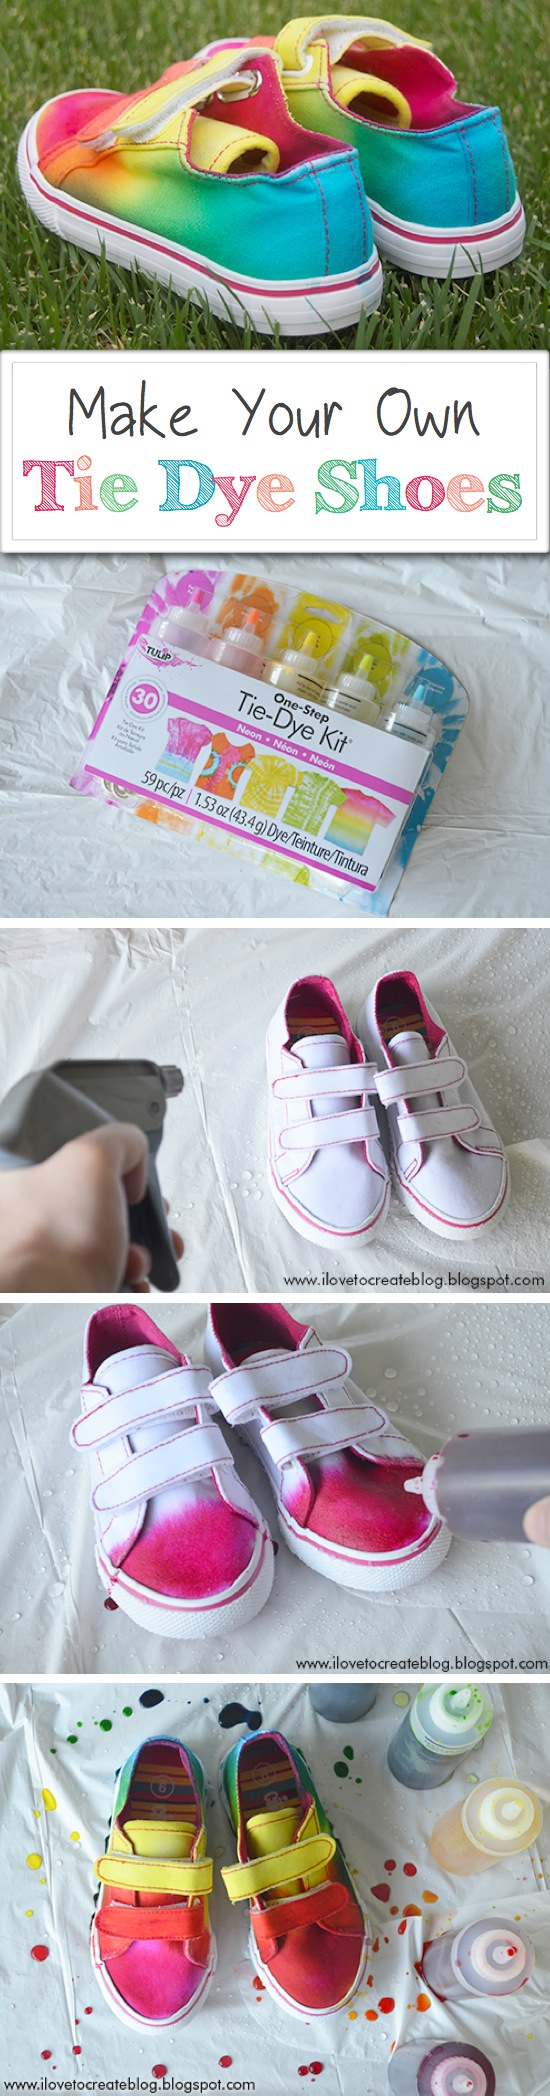 Make Your Own Tie Dye Shoes